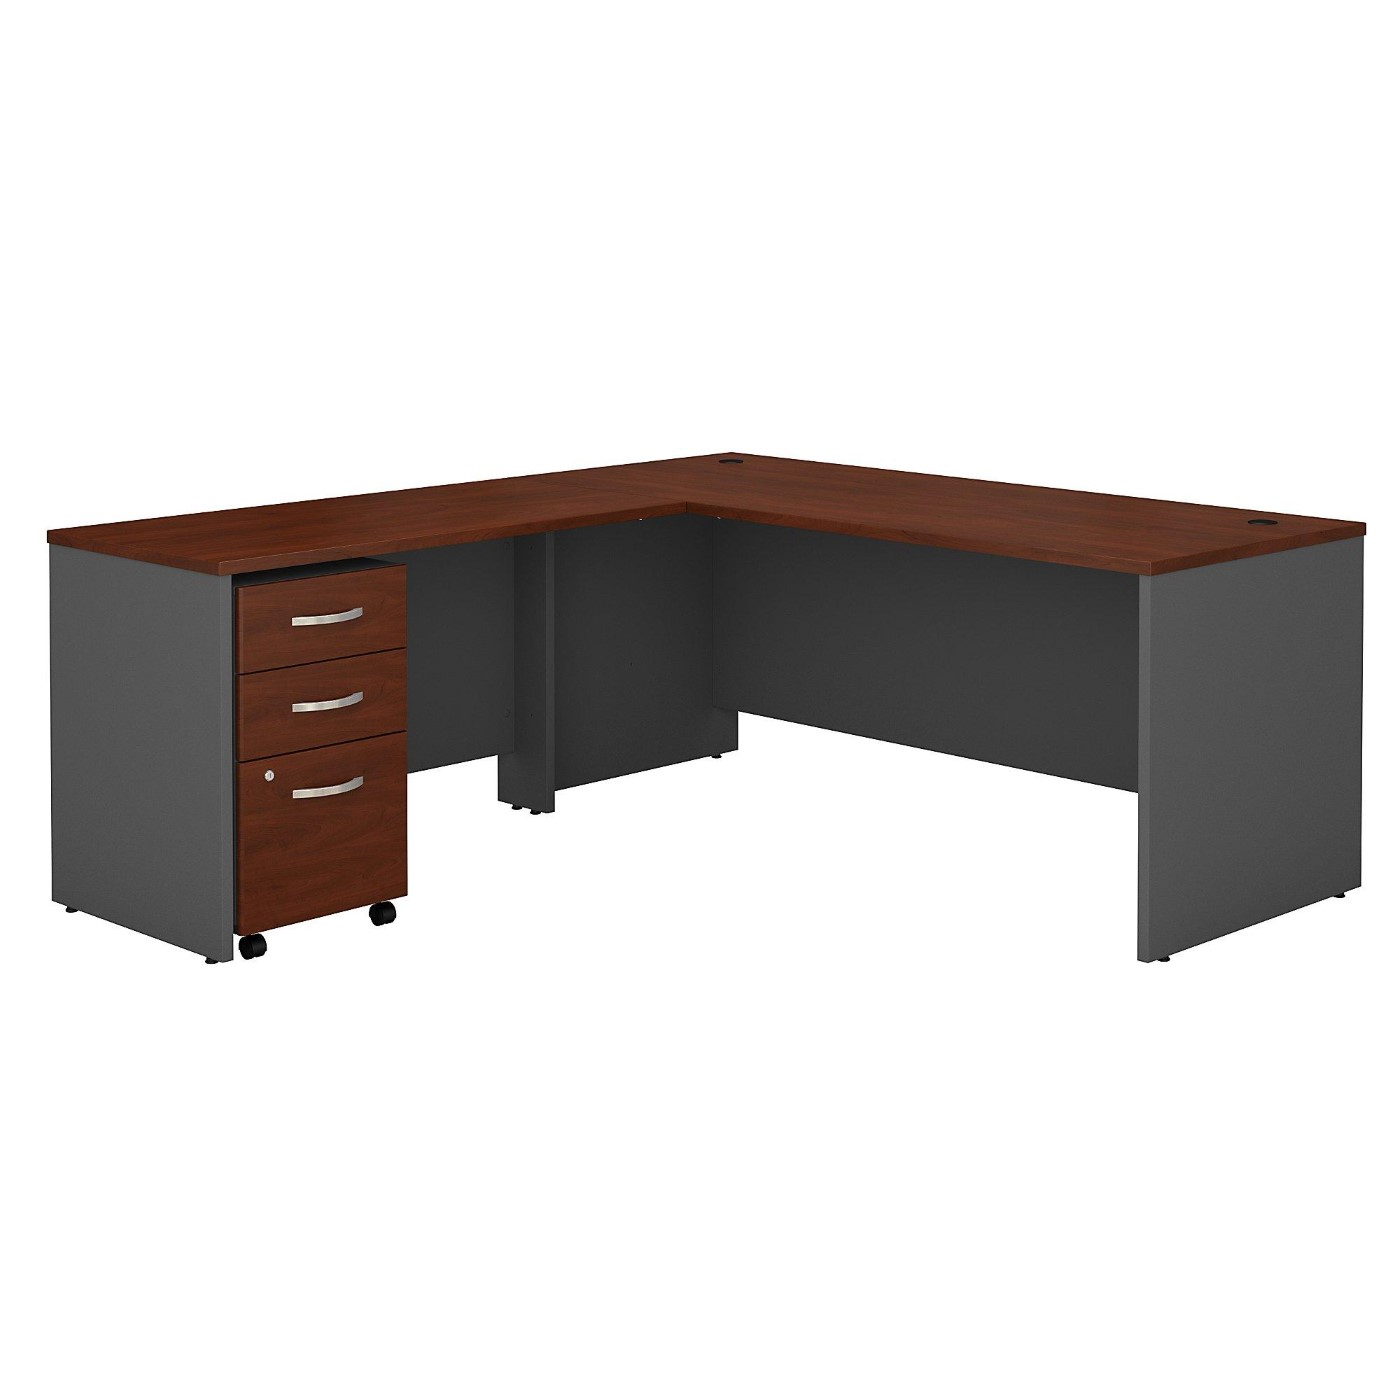 BUSH BUSINESS FURNITURE SERIES C 72W L SHAPED DESK WITH 48W RETURN AND MOBILE FILE CABINET. FREE SHIPPING.